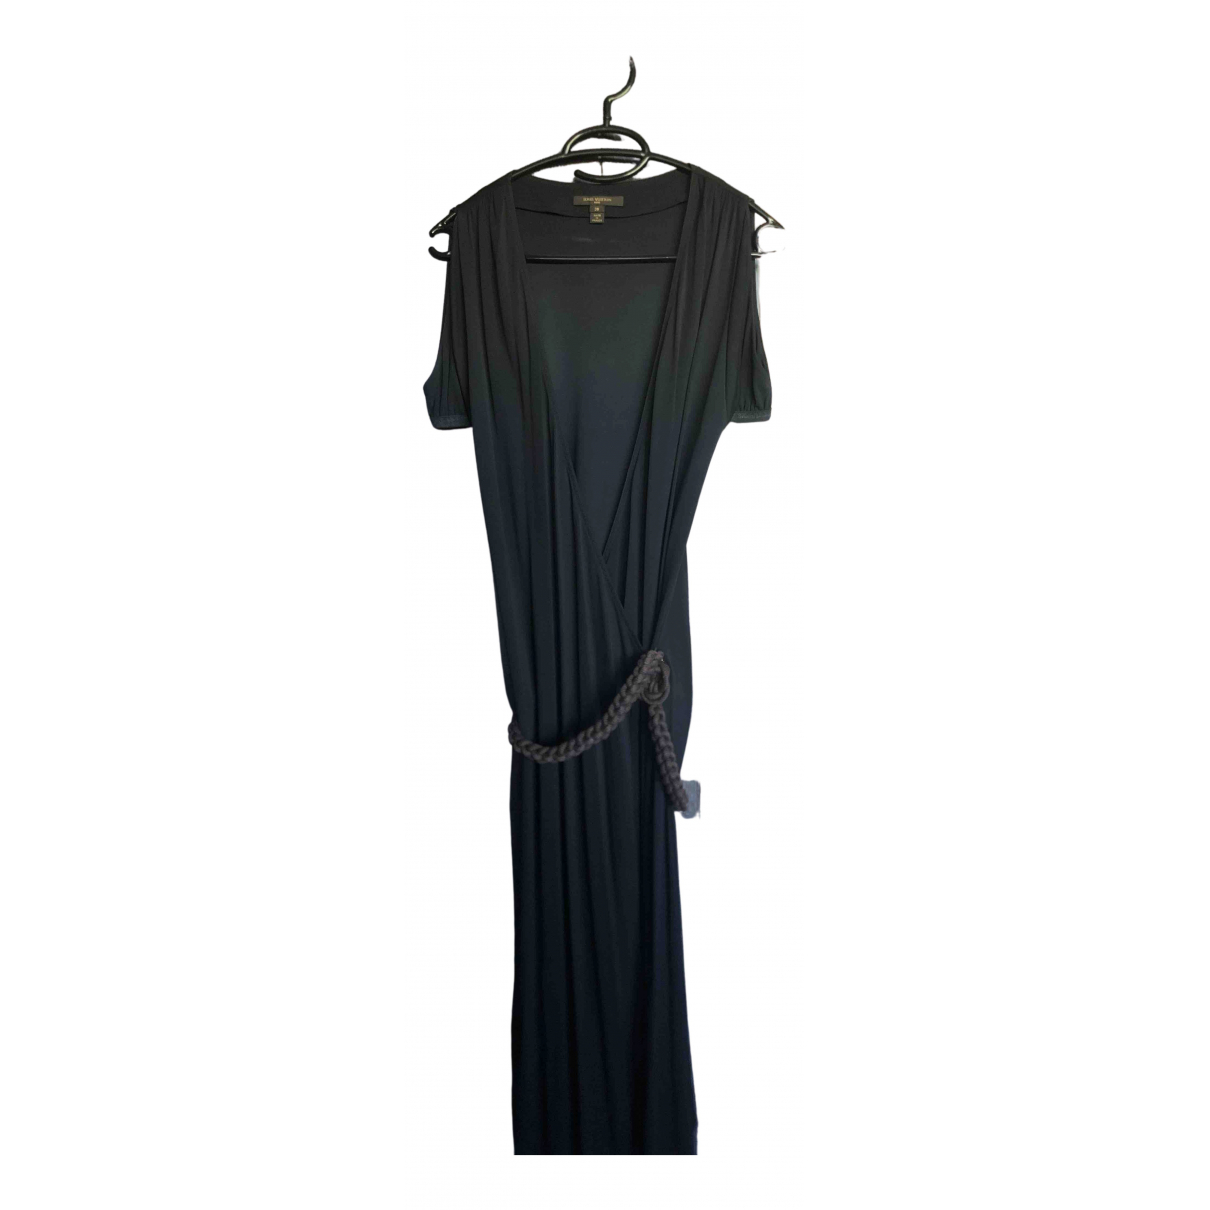 Louis Vuitton N Black dress for Women 38 FR